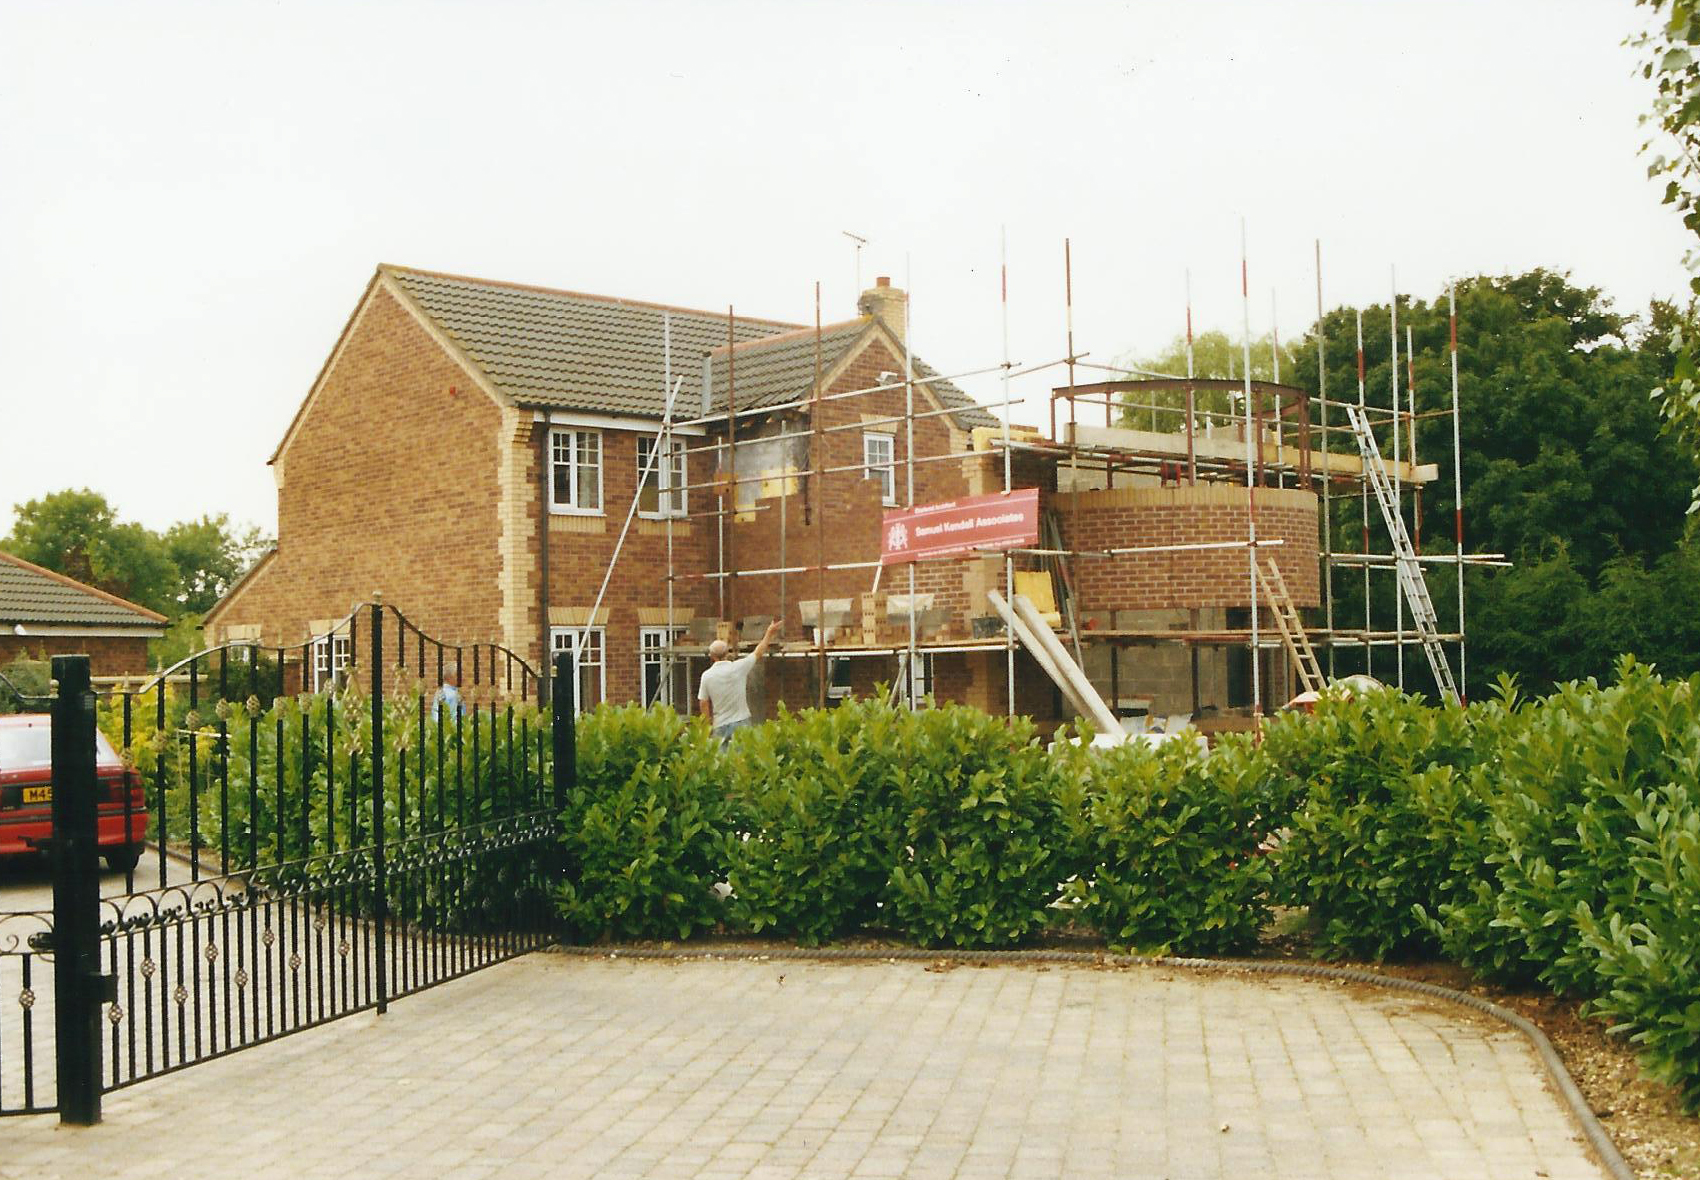 Beverley Road Construction 6 - Driffield Architects - Samuel Kendall Associates.jpg